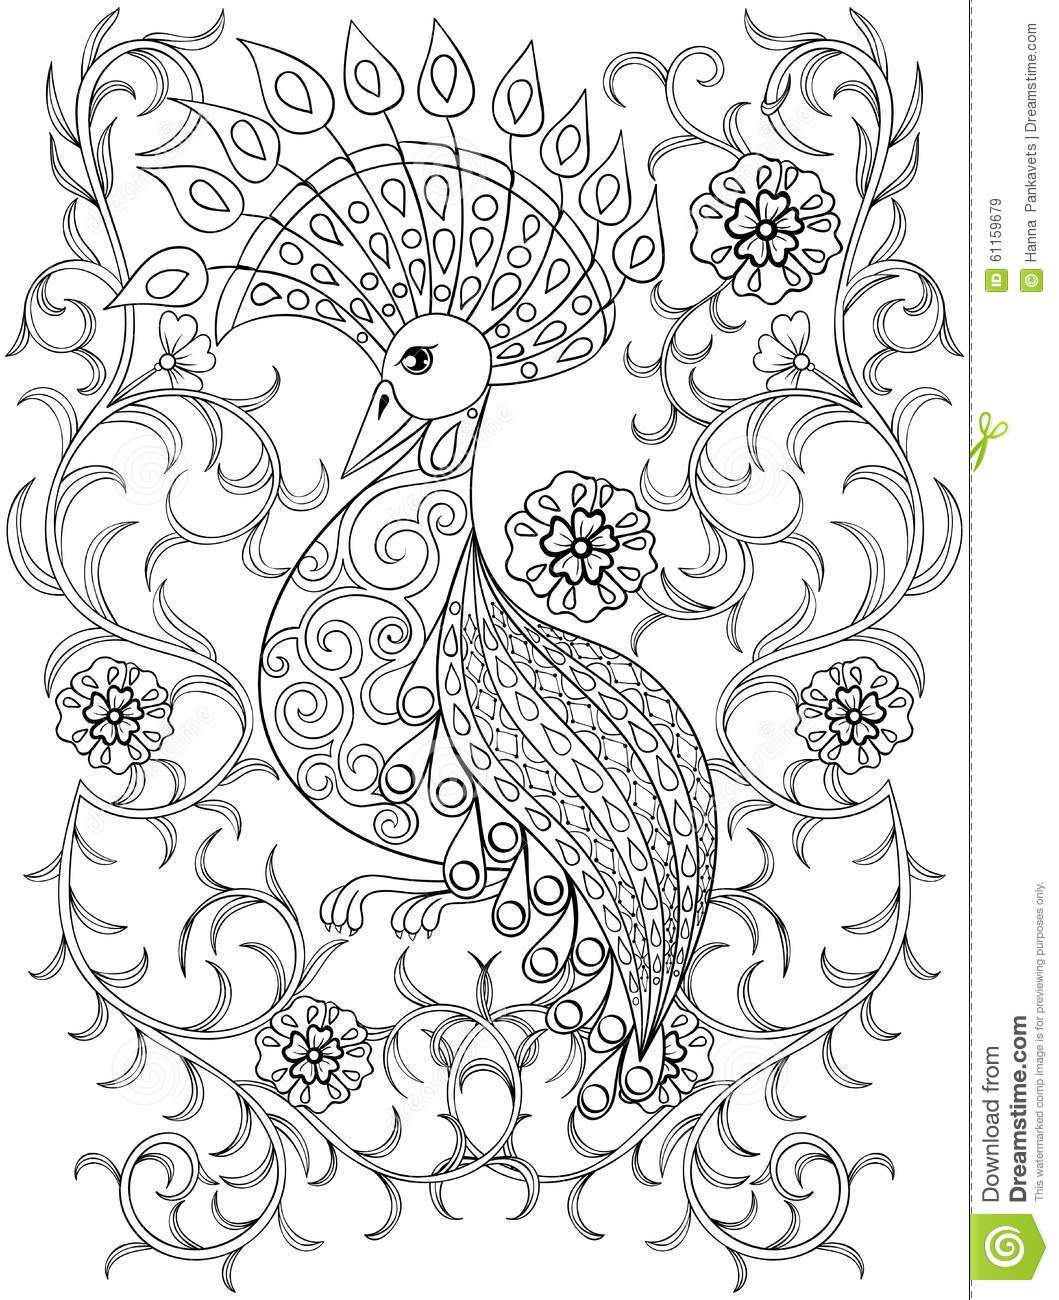 Coloring Page With Bird In Flowers, Zentangle Illustartion